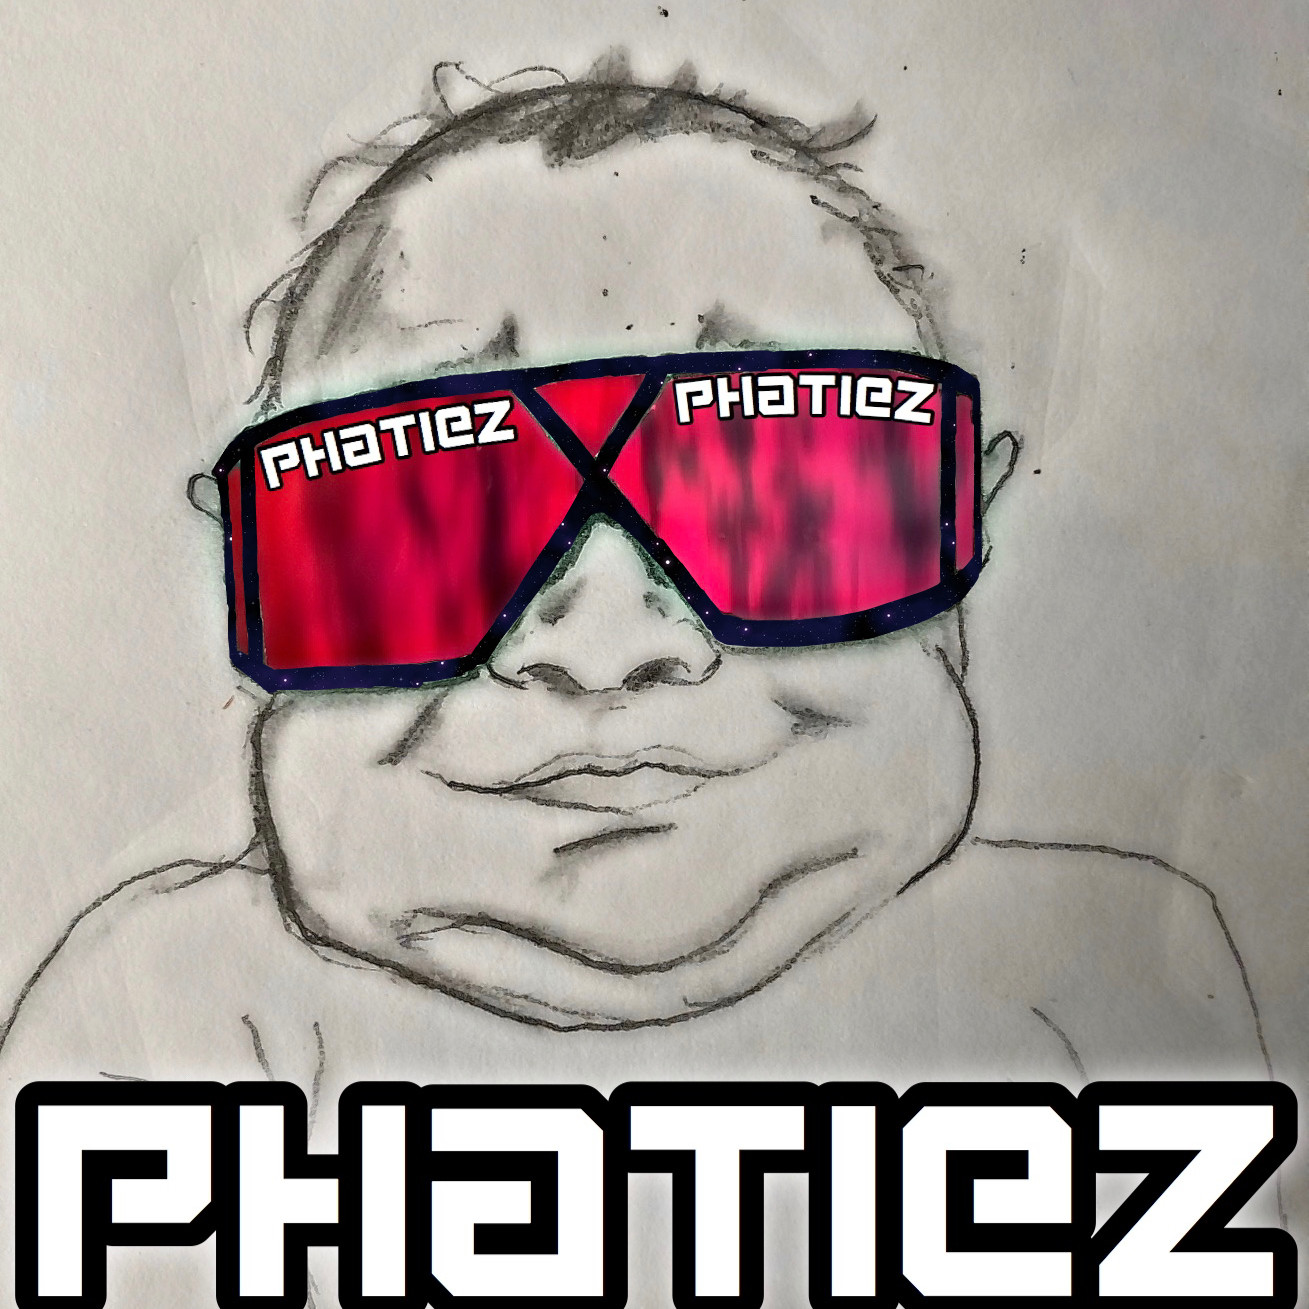 ghozt270's profile picture